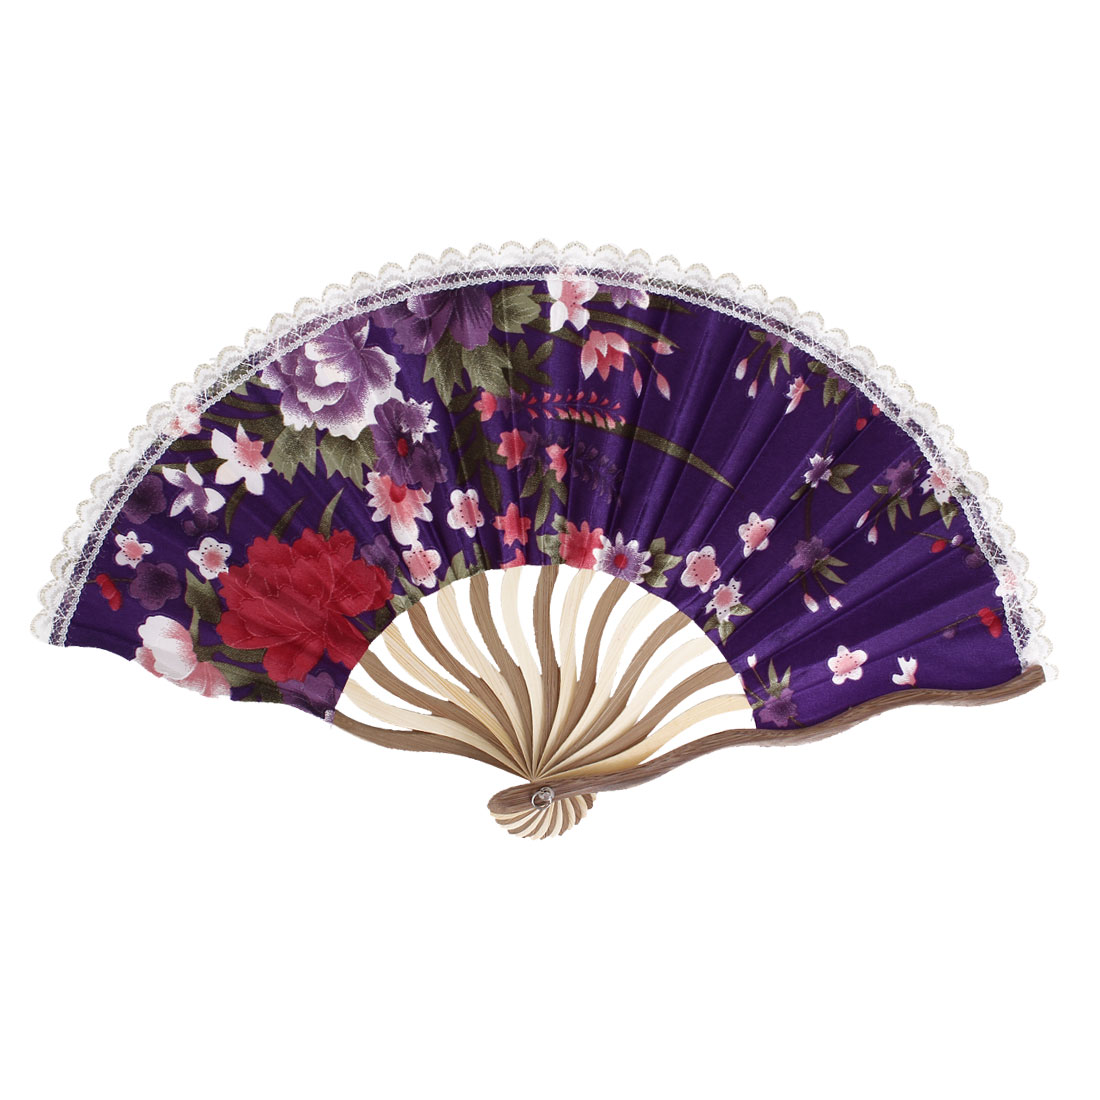 Wood Frame Flowers Pattern Lace Rim Wedding Party Folding Hand Fan Purple